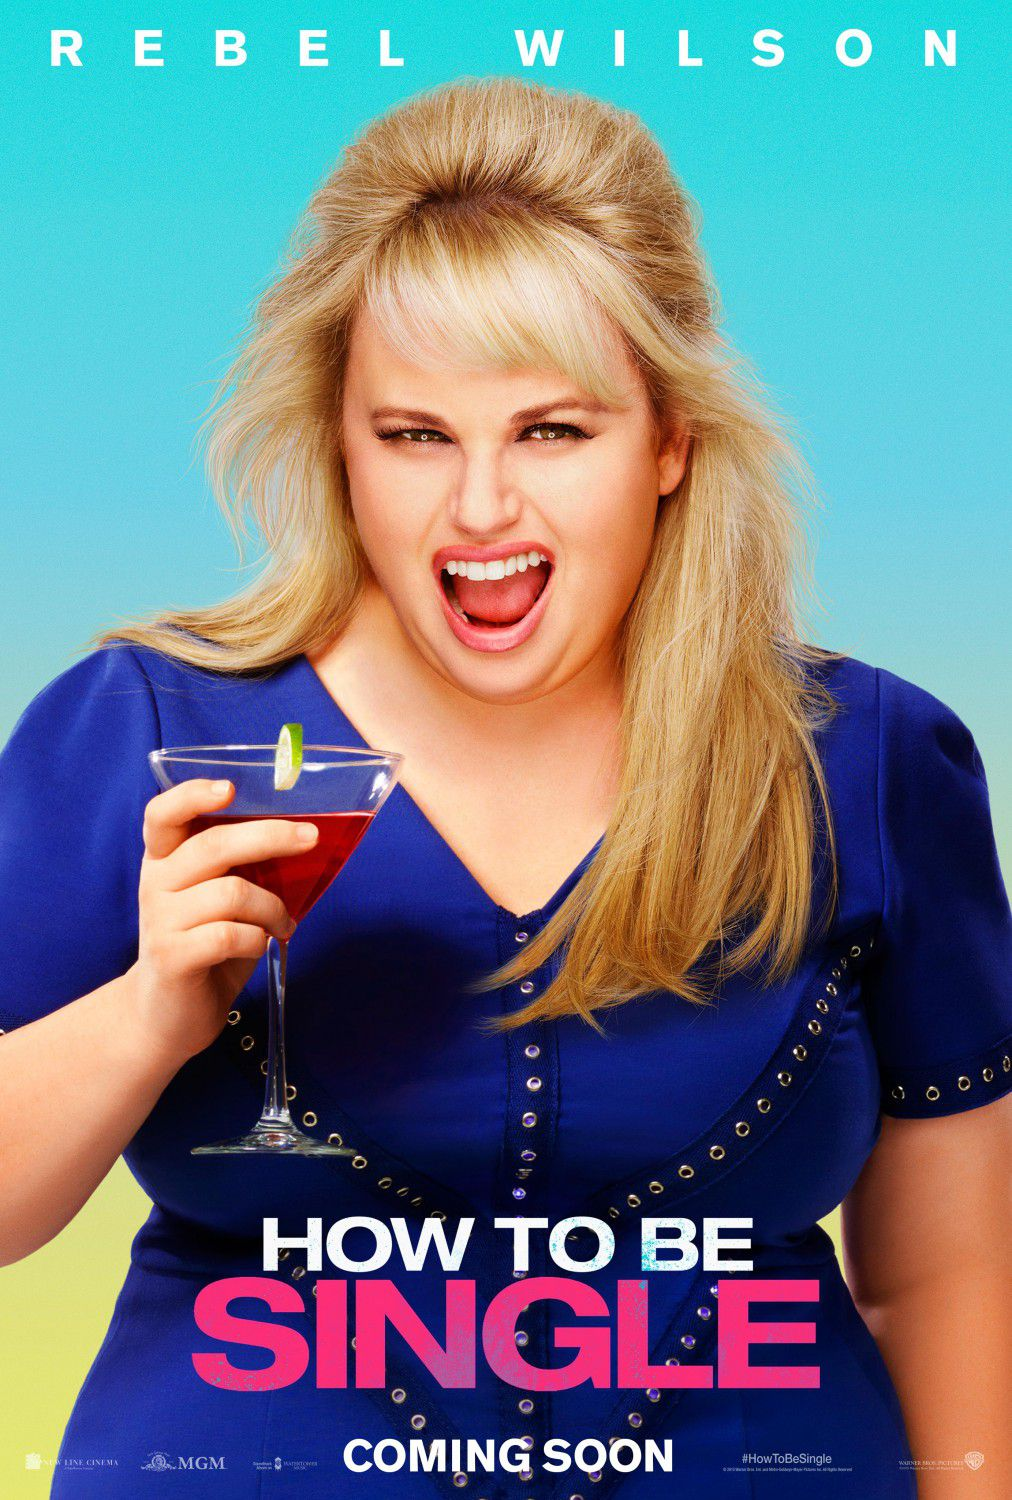 How to be Single - Rebel Wilson